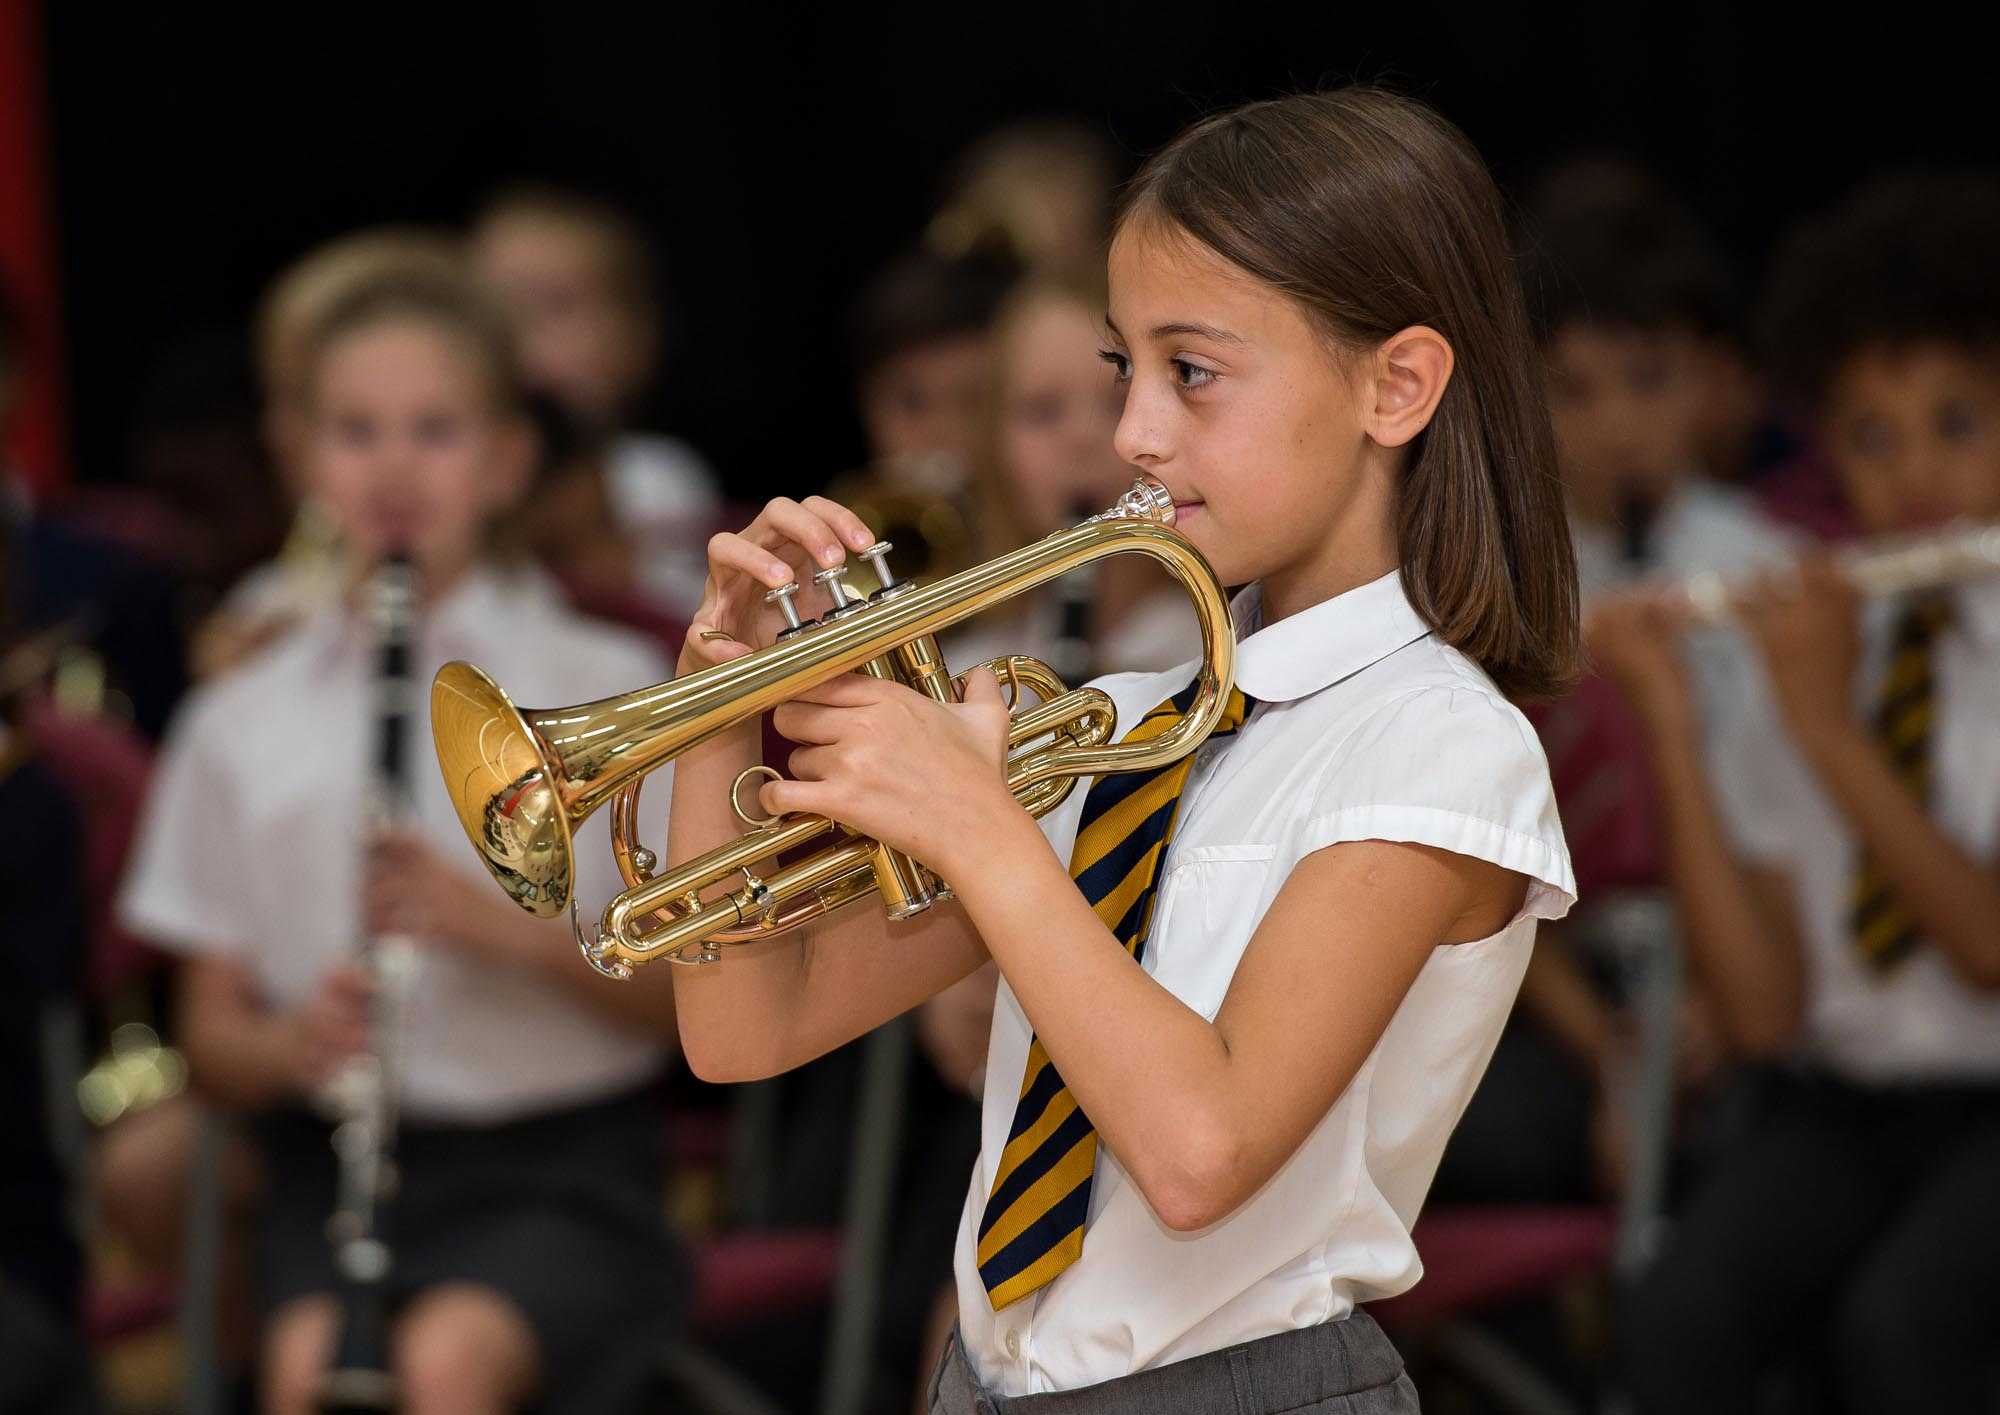 Girl playing cornet with orchestra in the background